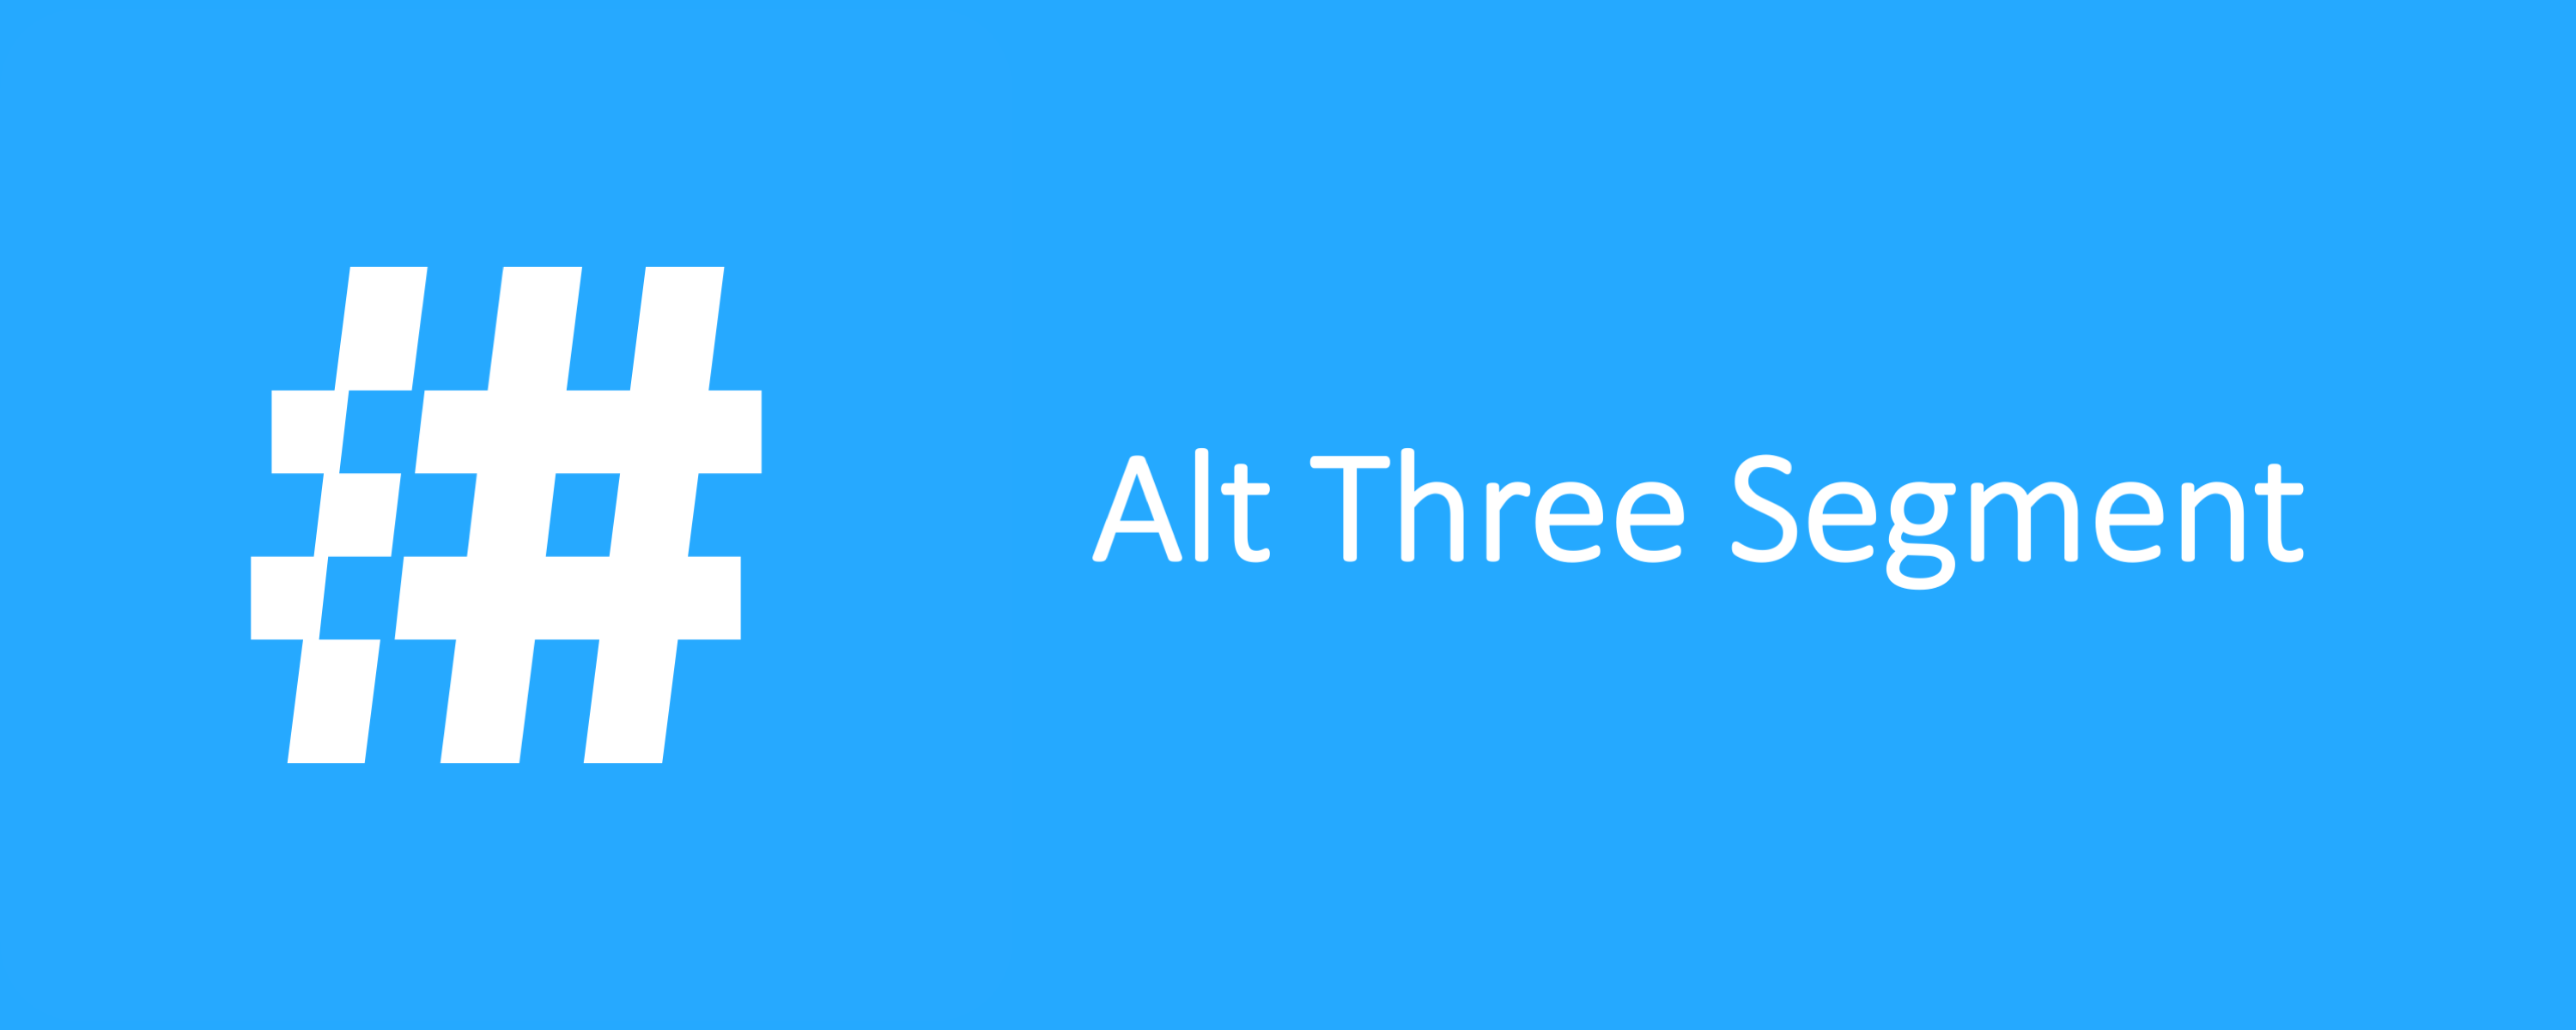 Alt Three Segment